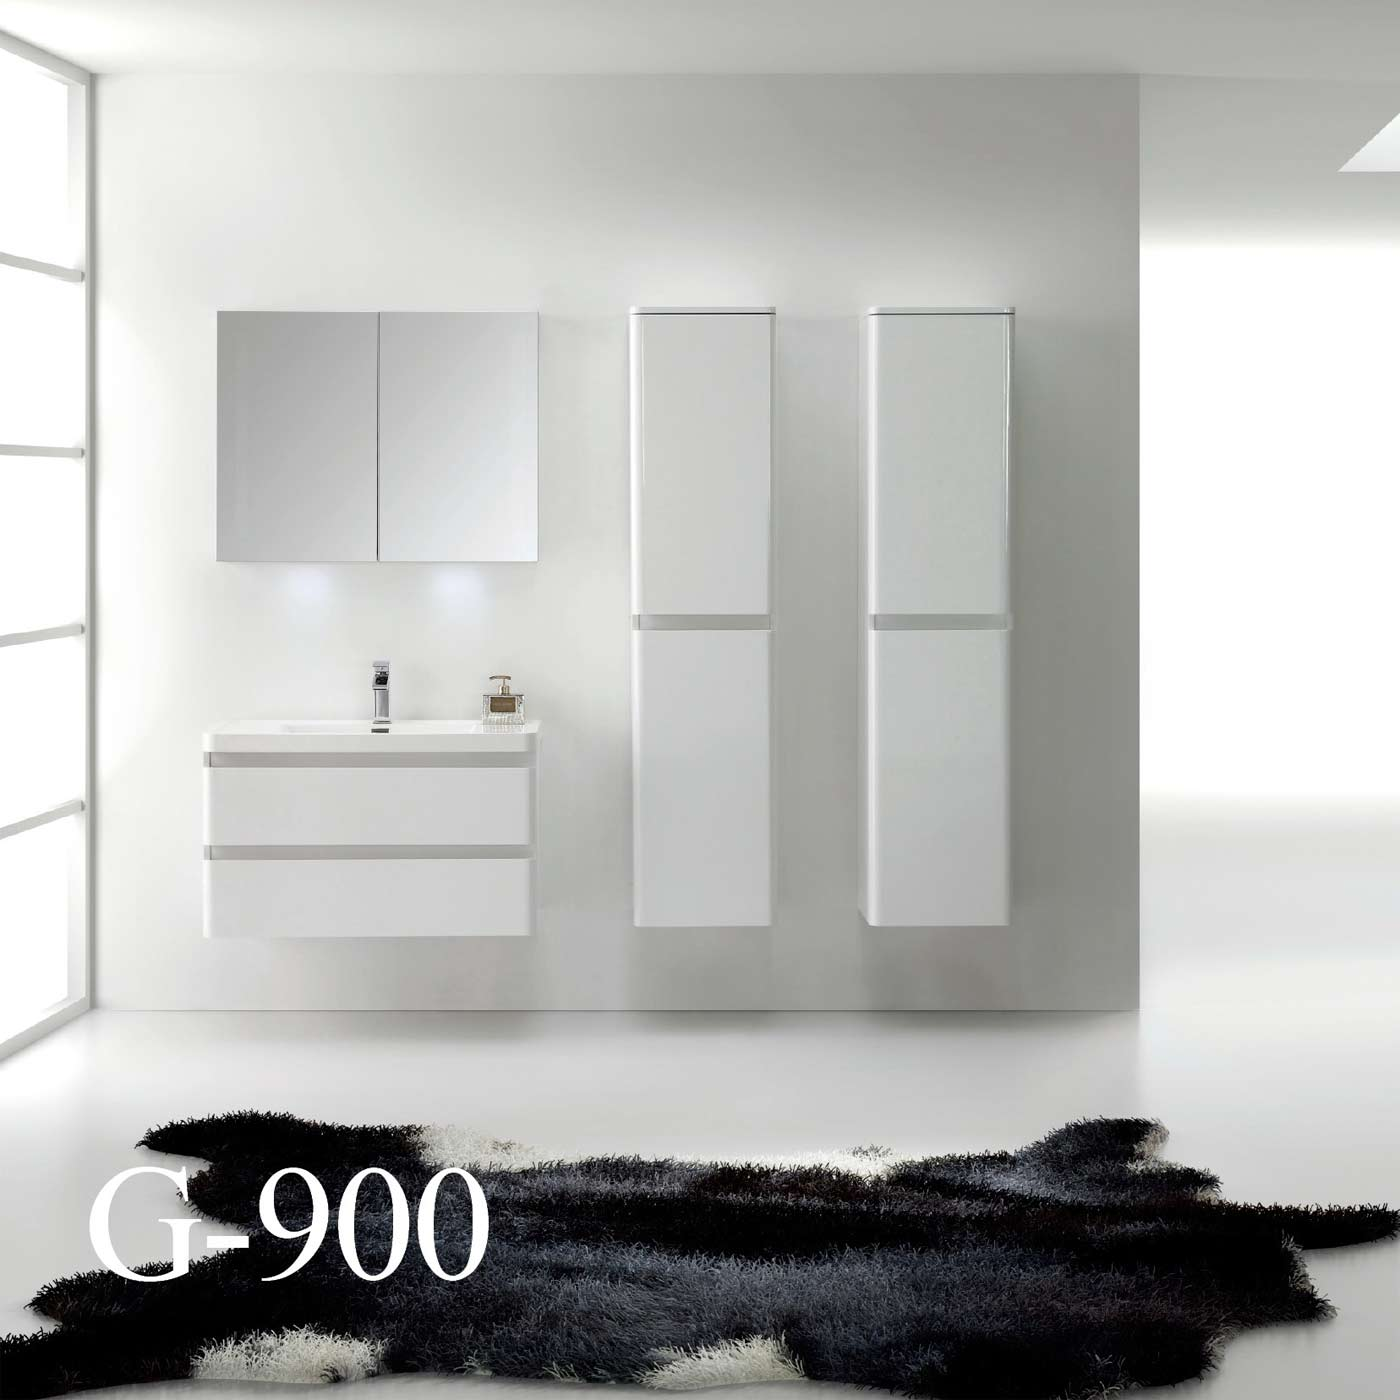 amaral 355 wall mount bathroom vanity high glossy white tn g900 hgw